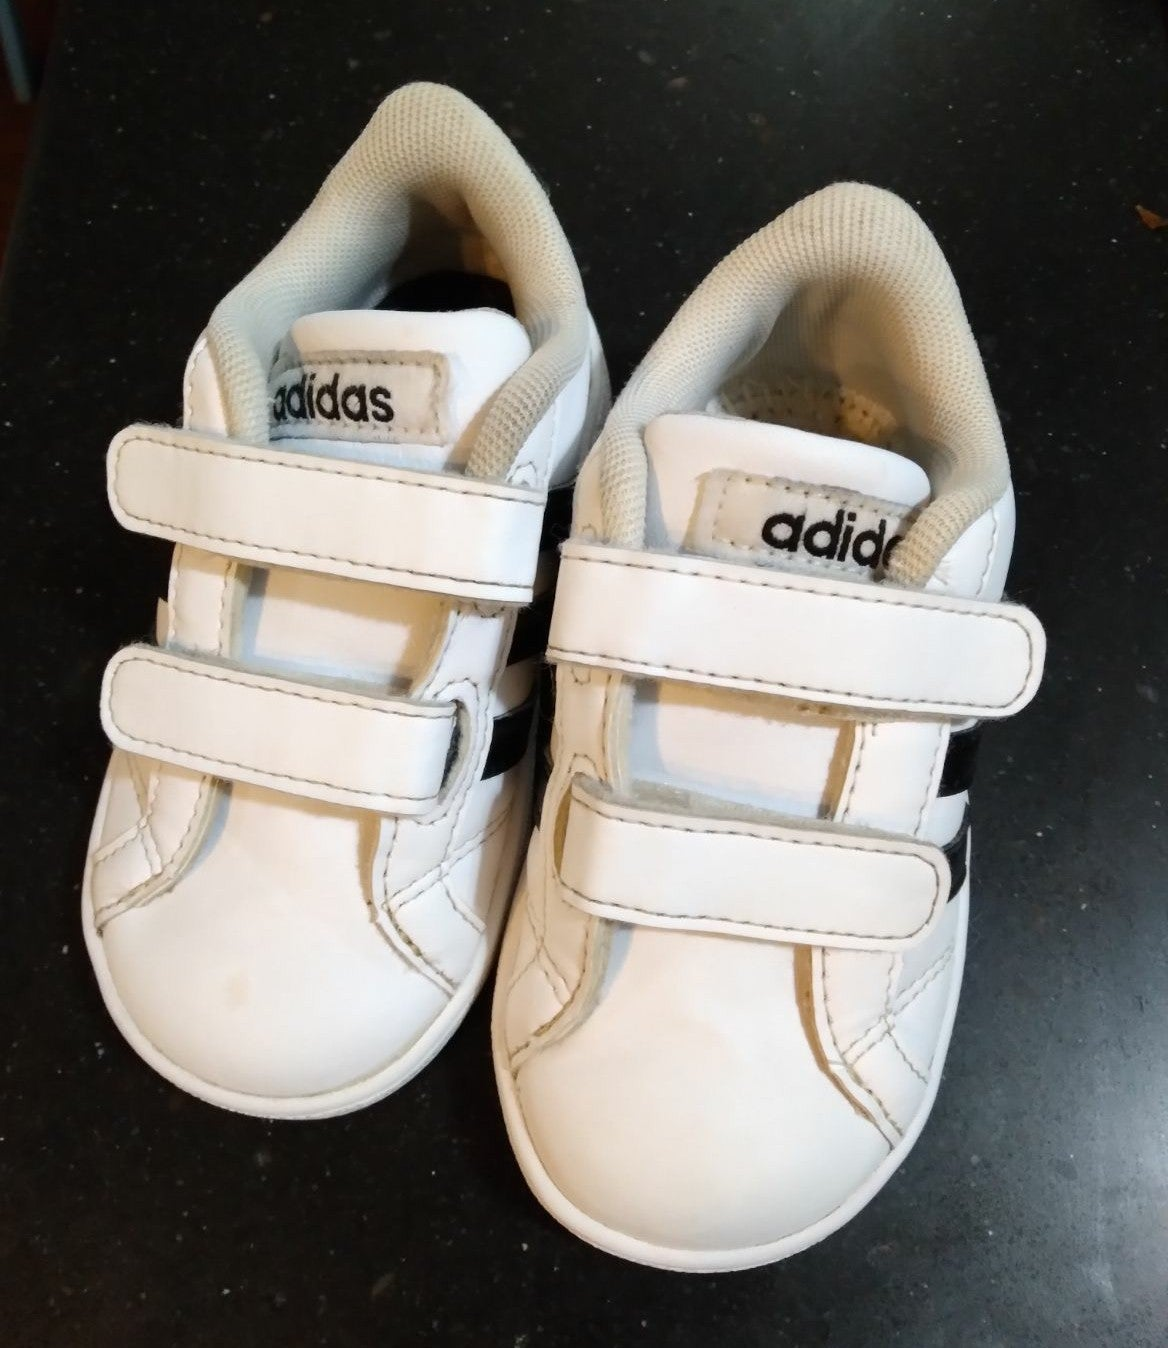 Adidas old school style sneakers